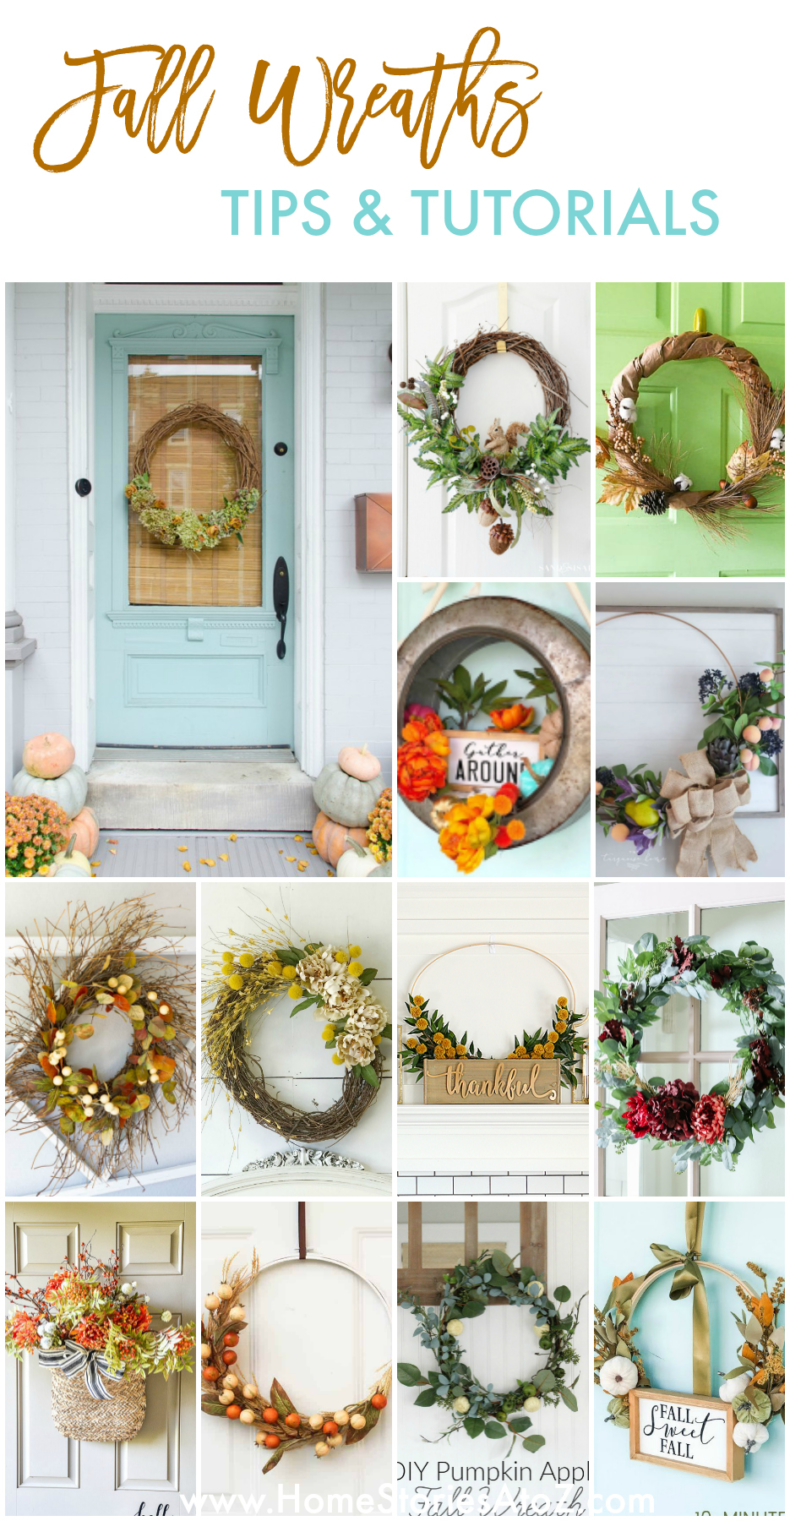 Fall Wreaths Tips and Tutorials